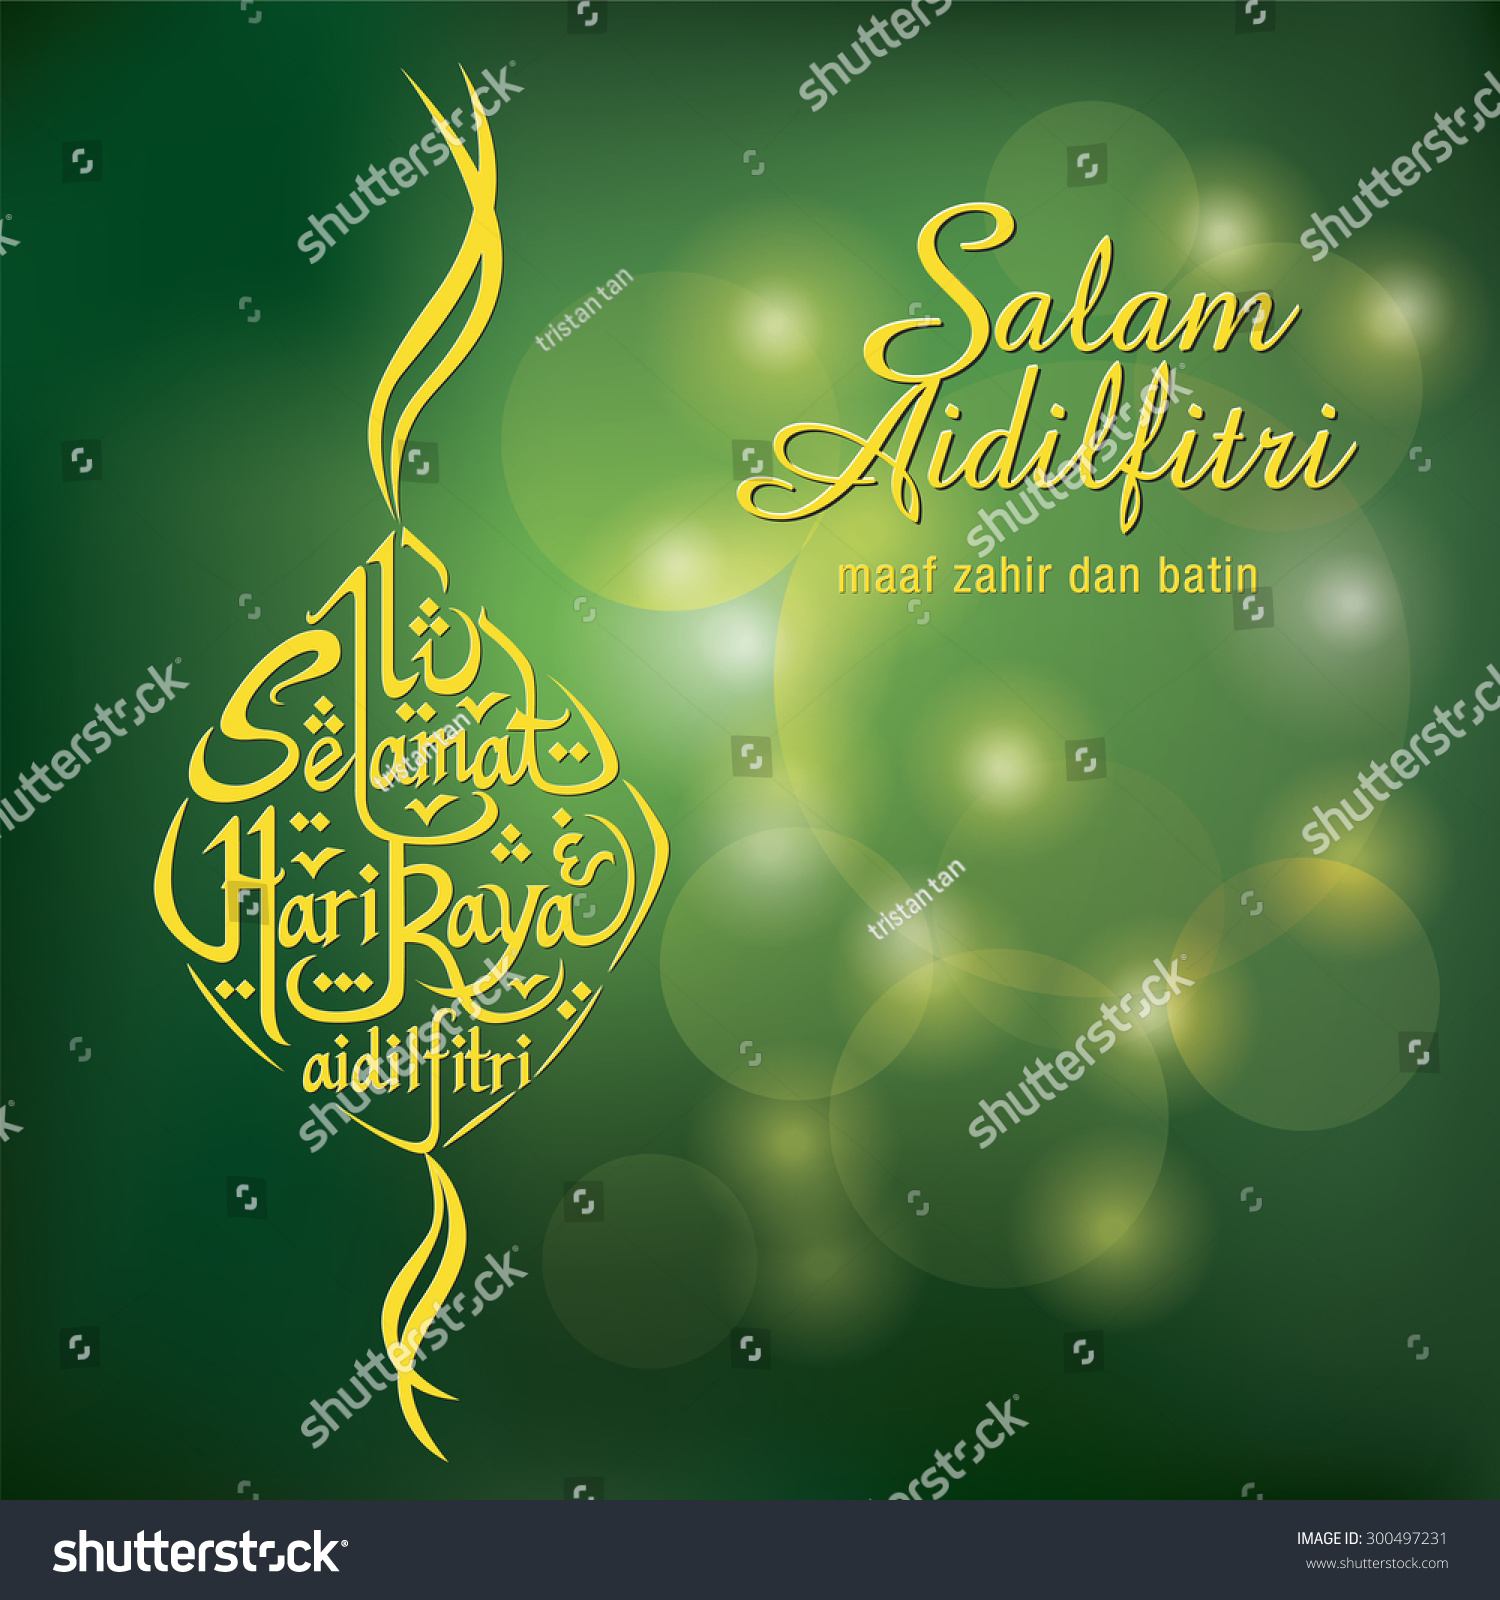 Selamat Hari Raya Hand Written Greeting Stock Vector